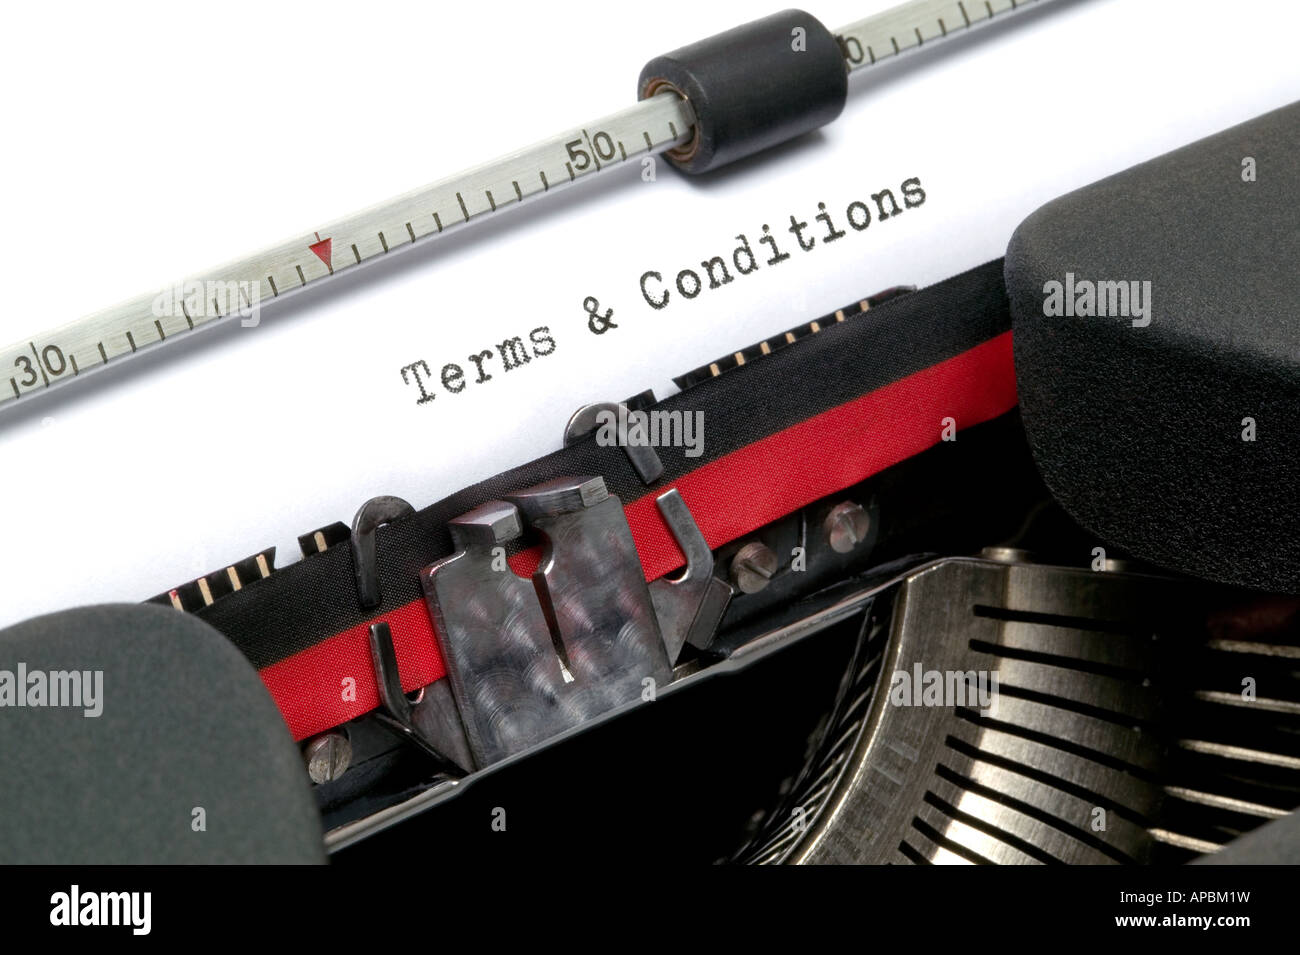 Terms and Conditions typed on an old typewriter - Stock Image